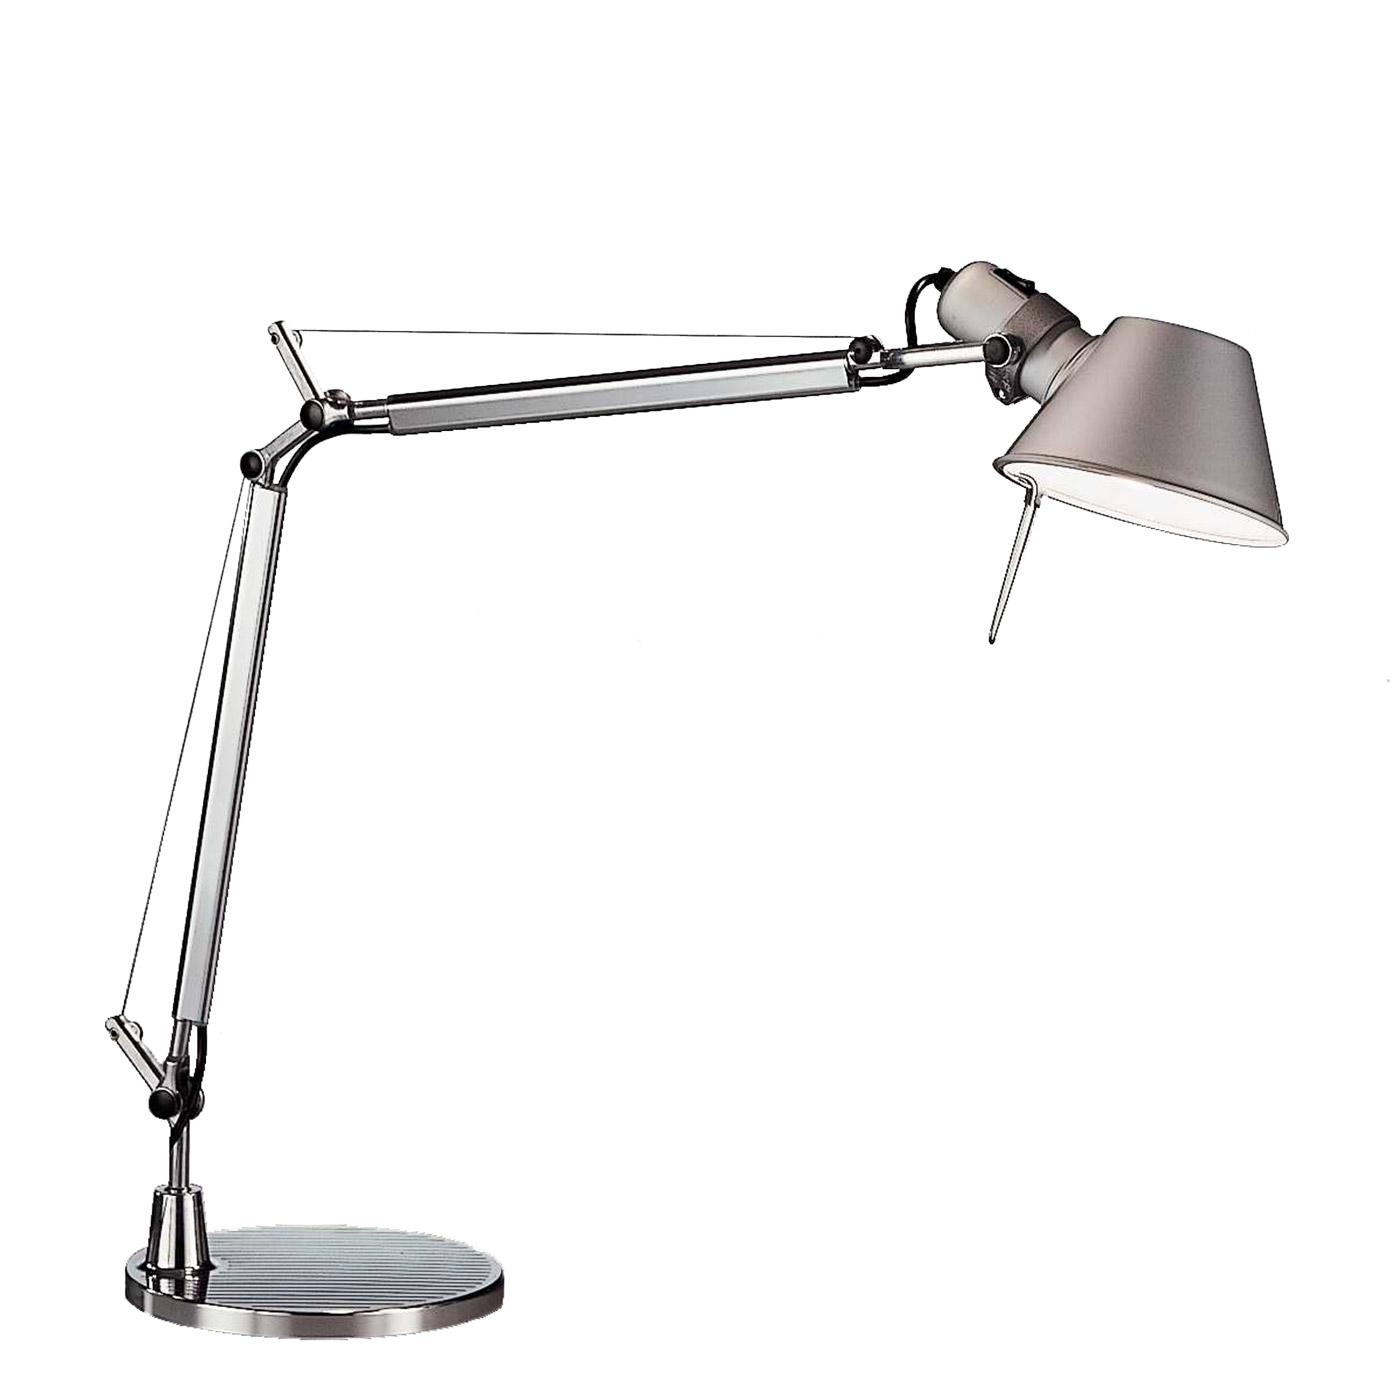 artemide tolomeo table lamp - Artemide Tolomeo Table Lamp Deplain.com